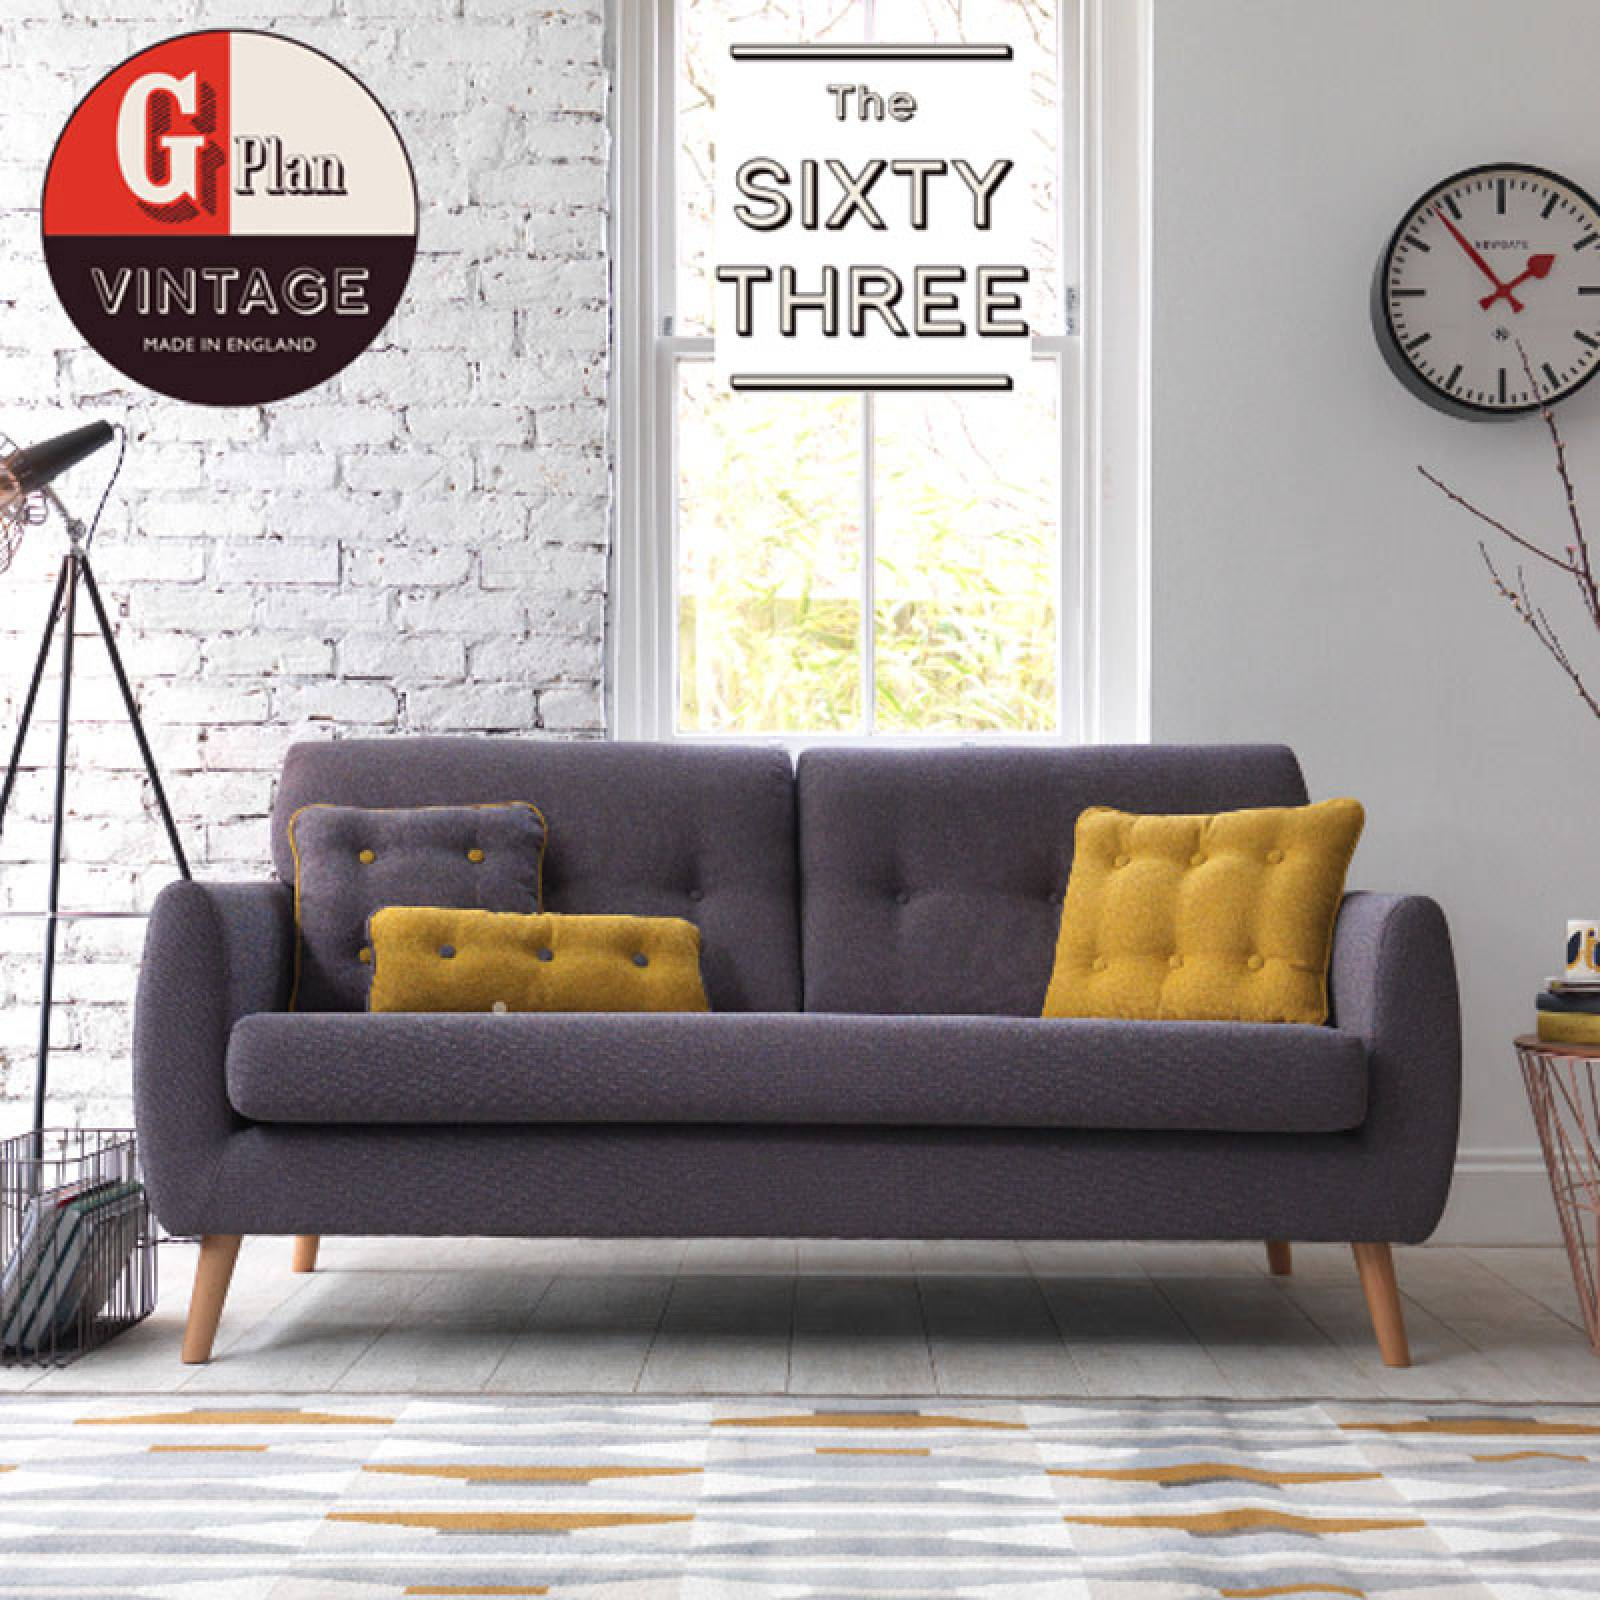 G Plan Vintage The Sixty Three Large Sofa thumbnails